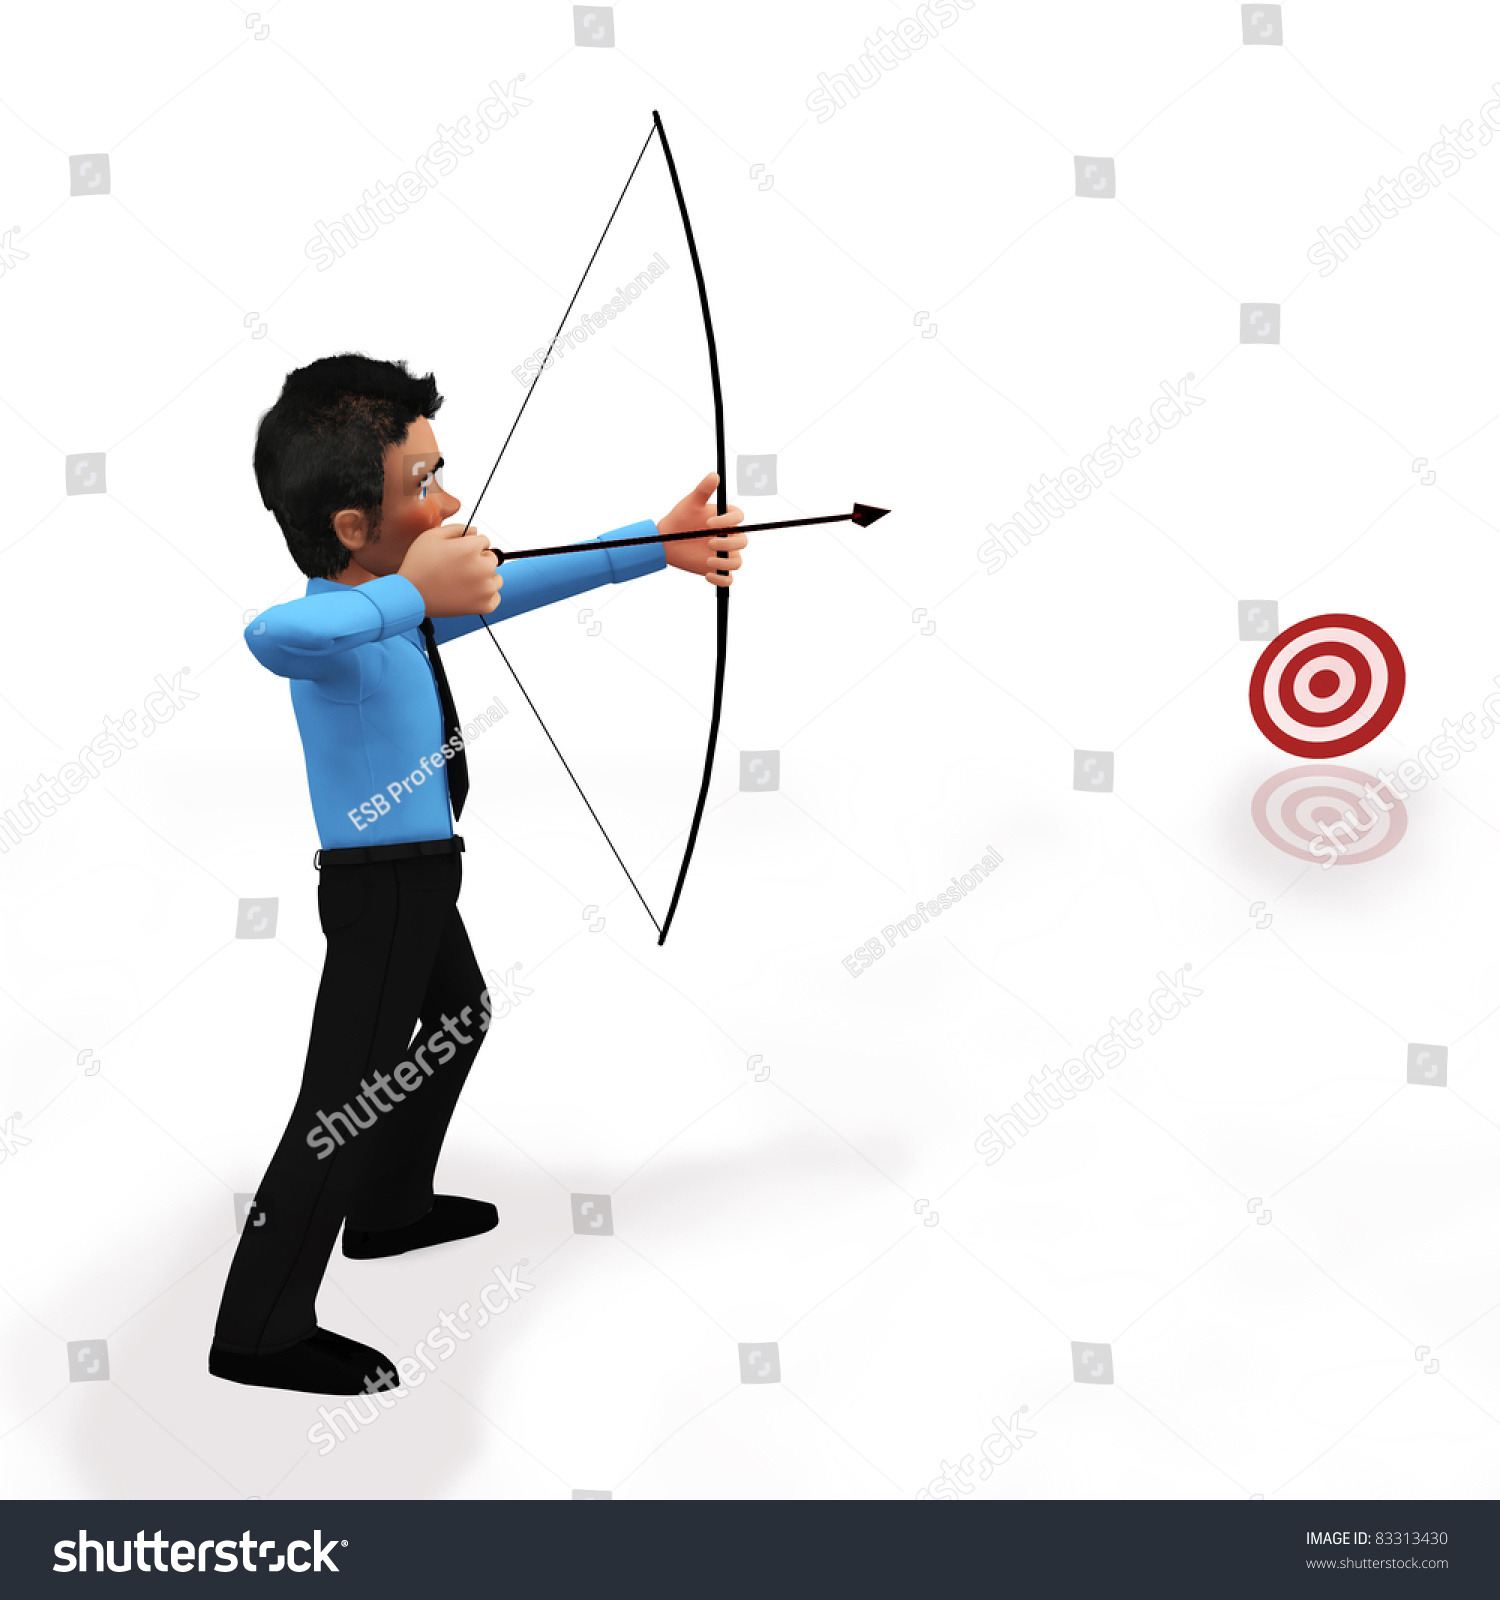 Male Character Holds Big Bow Aims Target With Arrow Isolated Isometric 3d Vector Illustration On White Background Man In Sports Wear Does